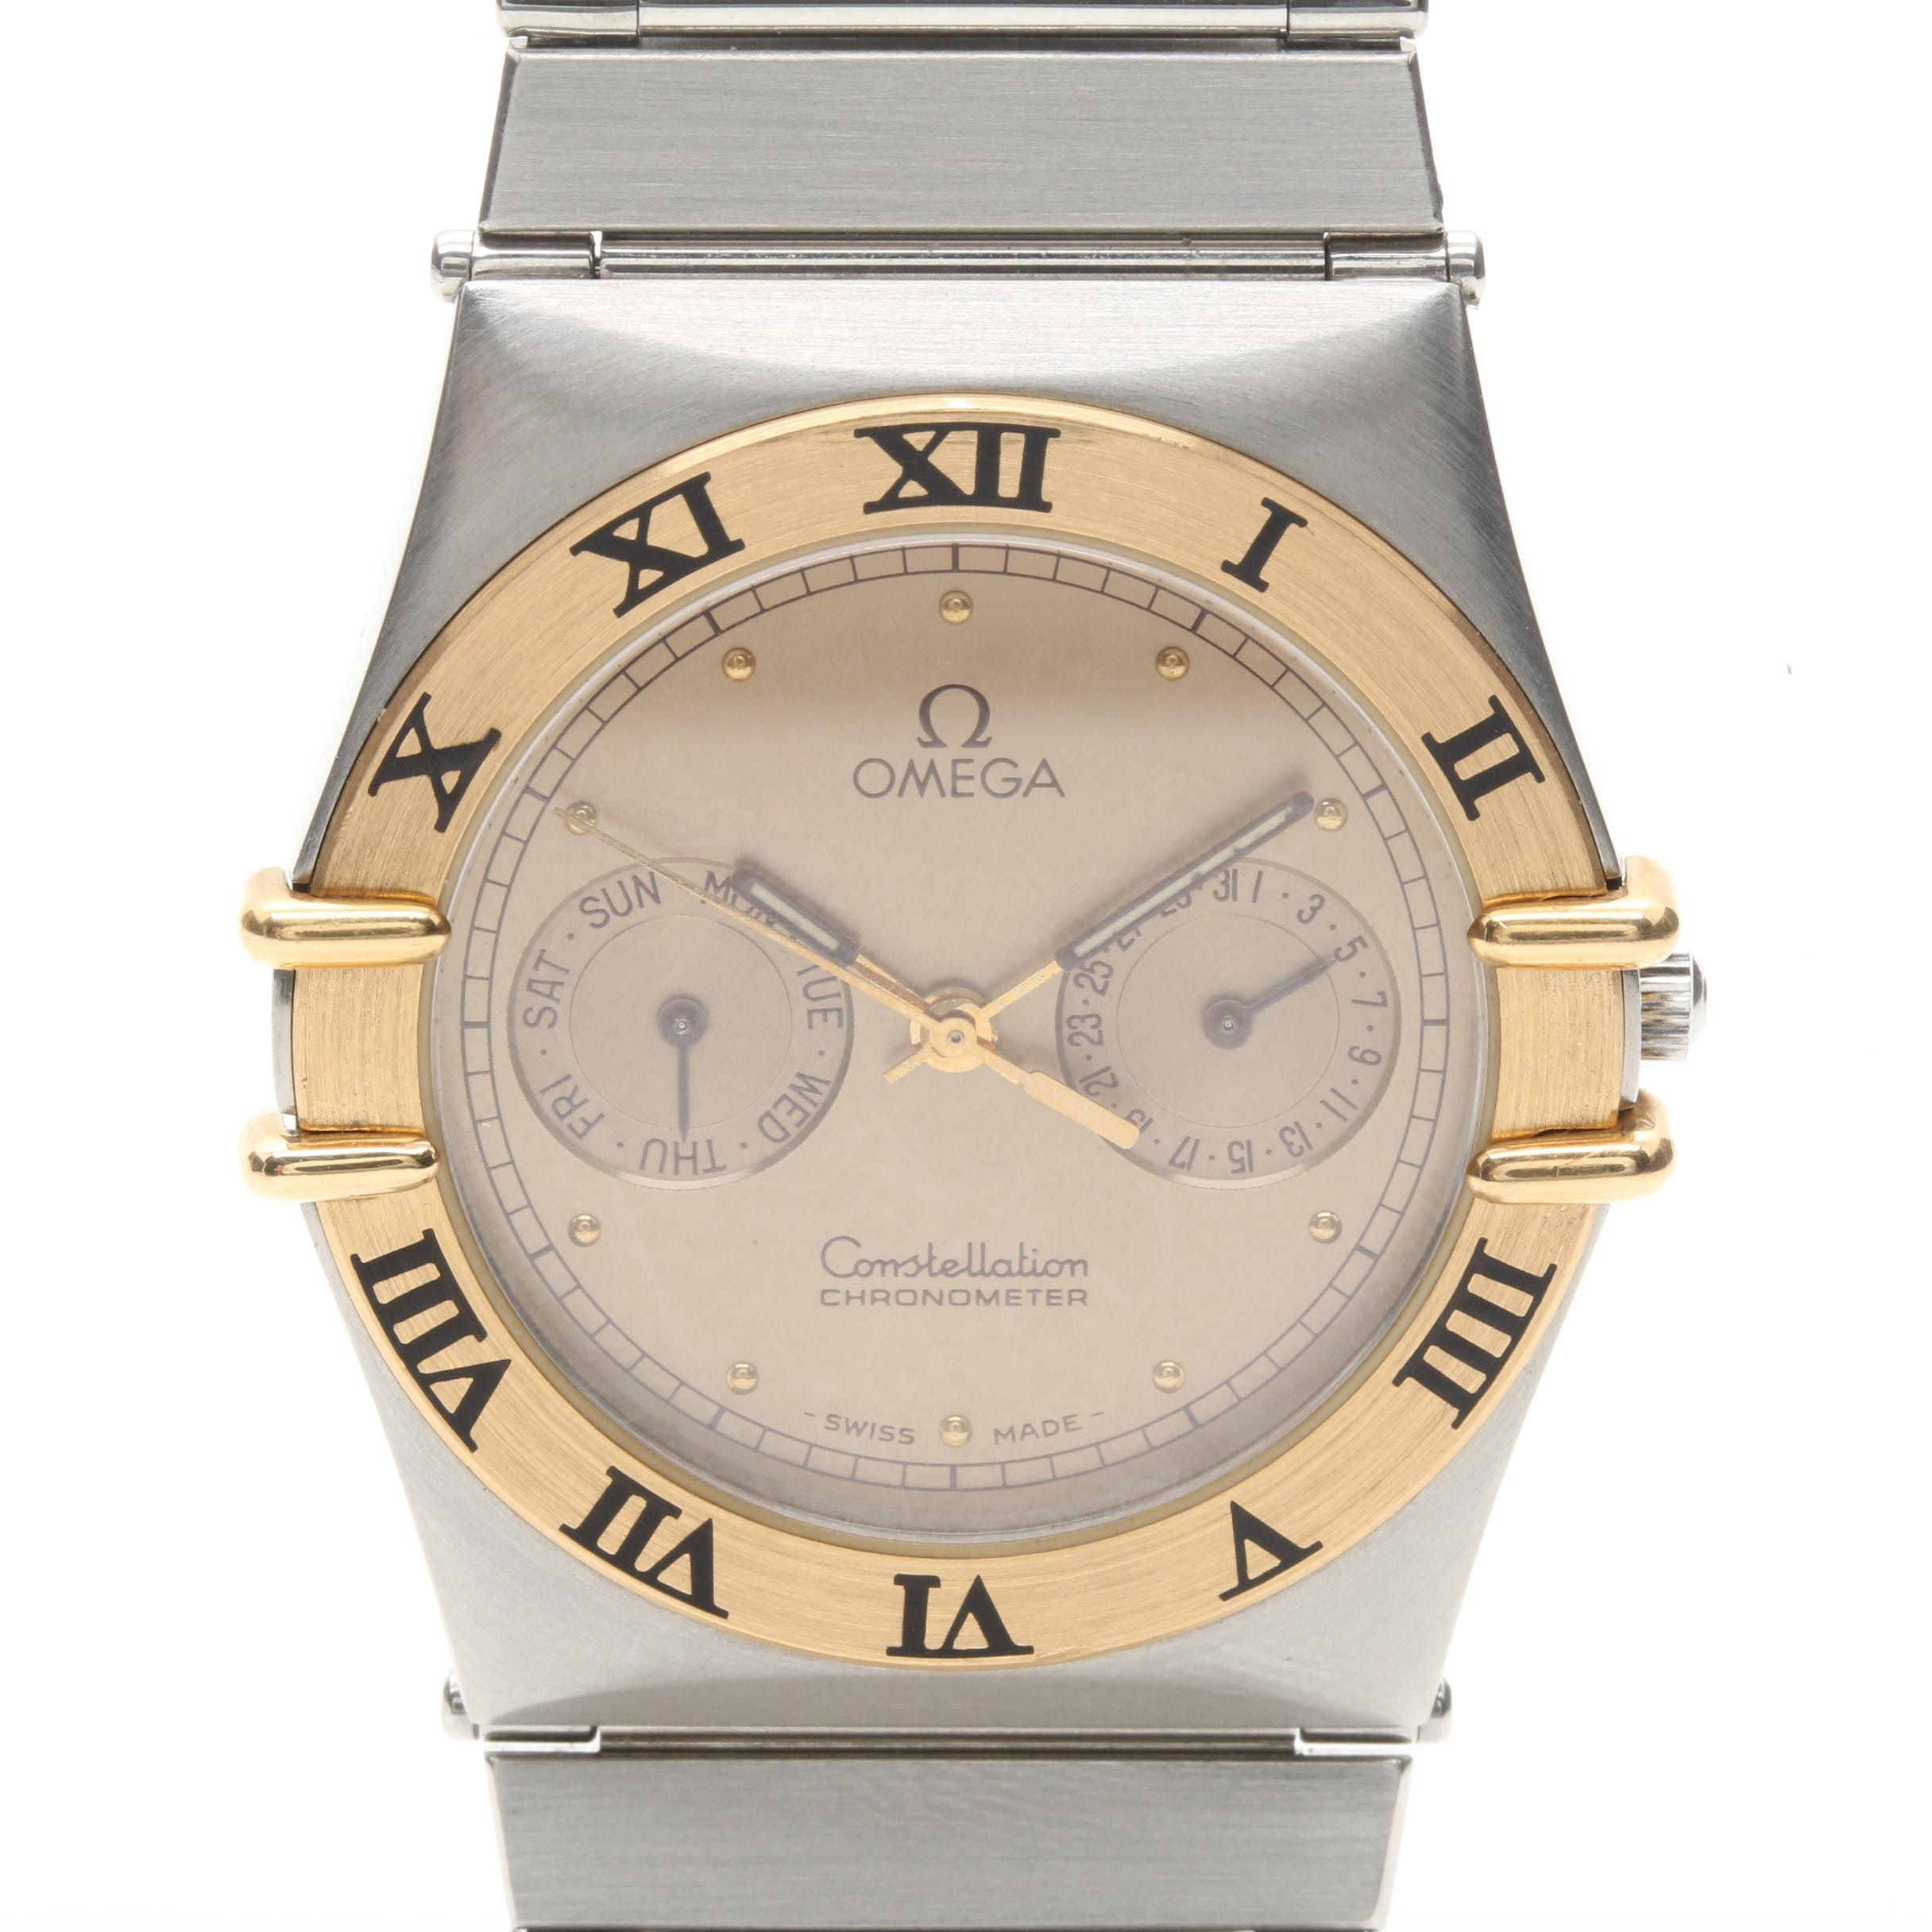 Silver Tone Omega Wristwatch with 18K Yellow Gold Bezel